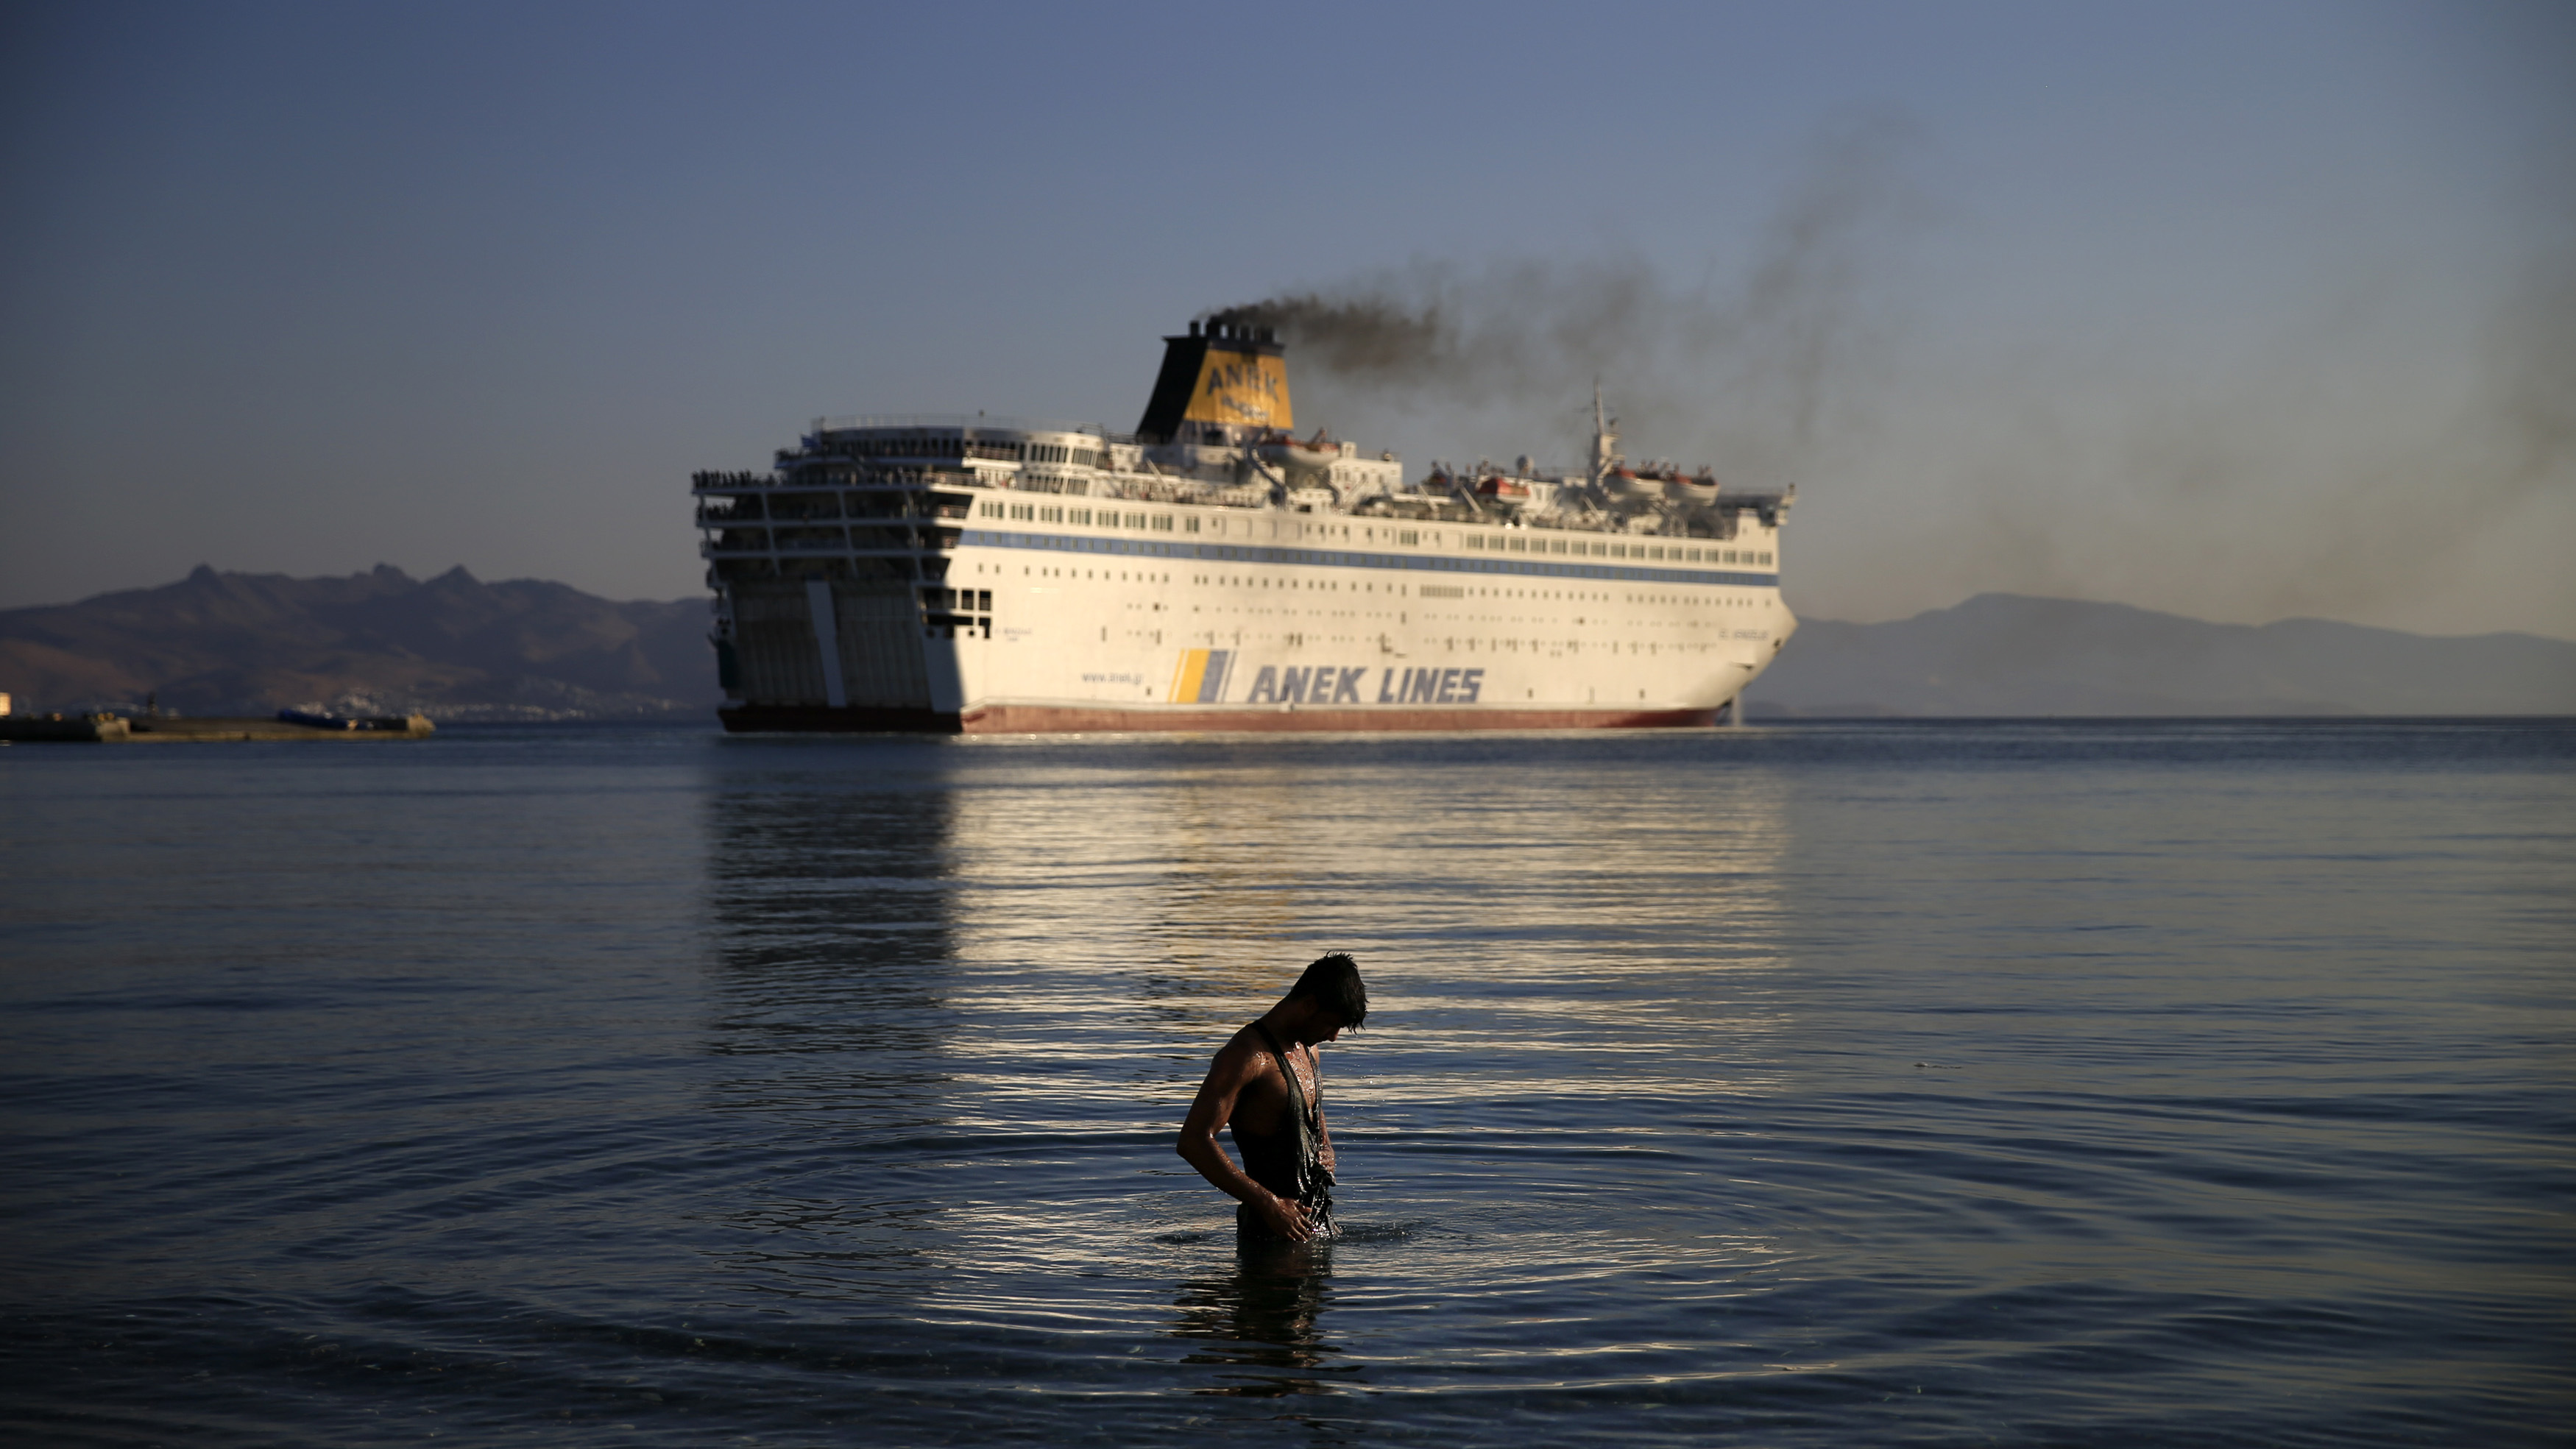 """A migrant washes as the passenger ship """"Eleftherios Venizelos"""" leaves the port on the Greek island of Kos, August 19, 2015. A passenger ship carrying Syrian refugees set sail from the Greek island of Kos on Wednesday, heading for the mainland as authorities struggle to cope with a wave of arrivals. The Greek coast guard's office said the ship, which has acted as a floating accommodation and registration centre since Sunday, was heading for the northern port of Thessaloniki, Greece's second biggest city.   REUTERS/Alkis Konstantinidis TPX IMAGES OF THE DAY - RTX1OQH3"""